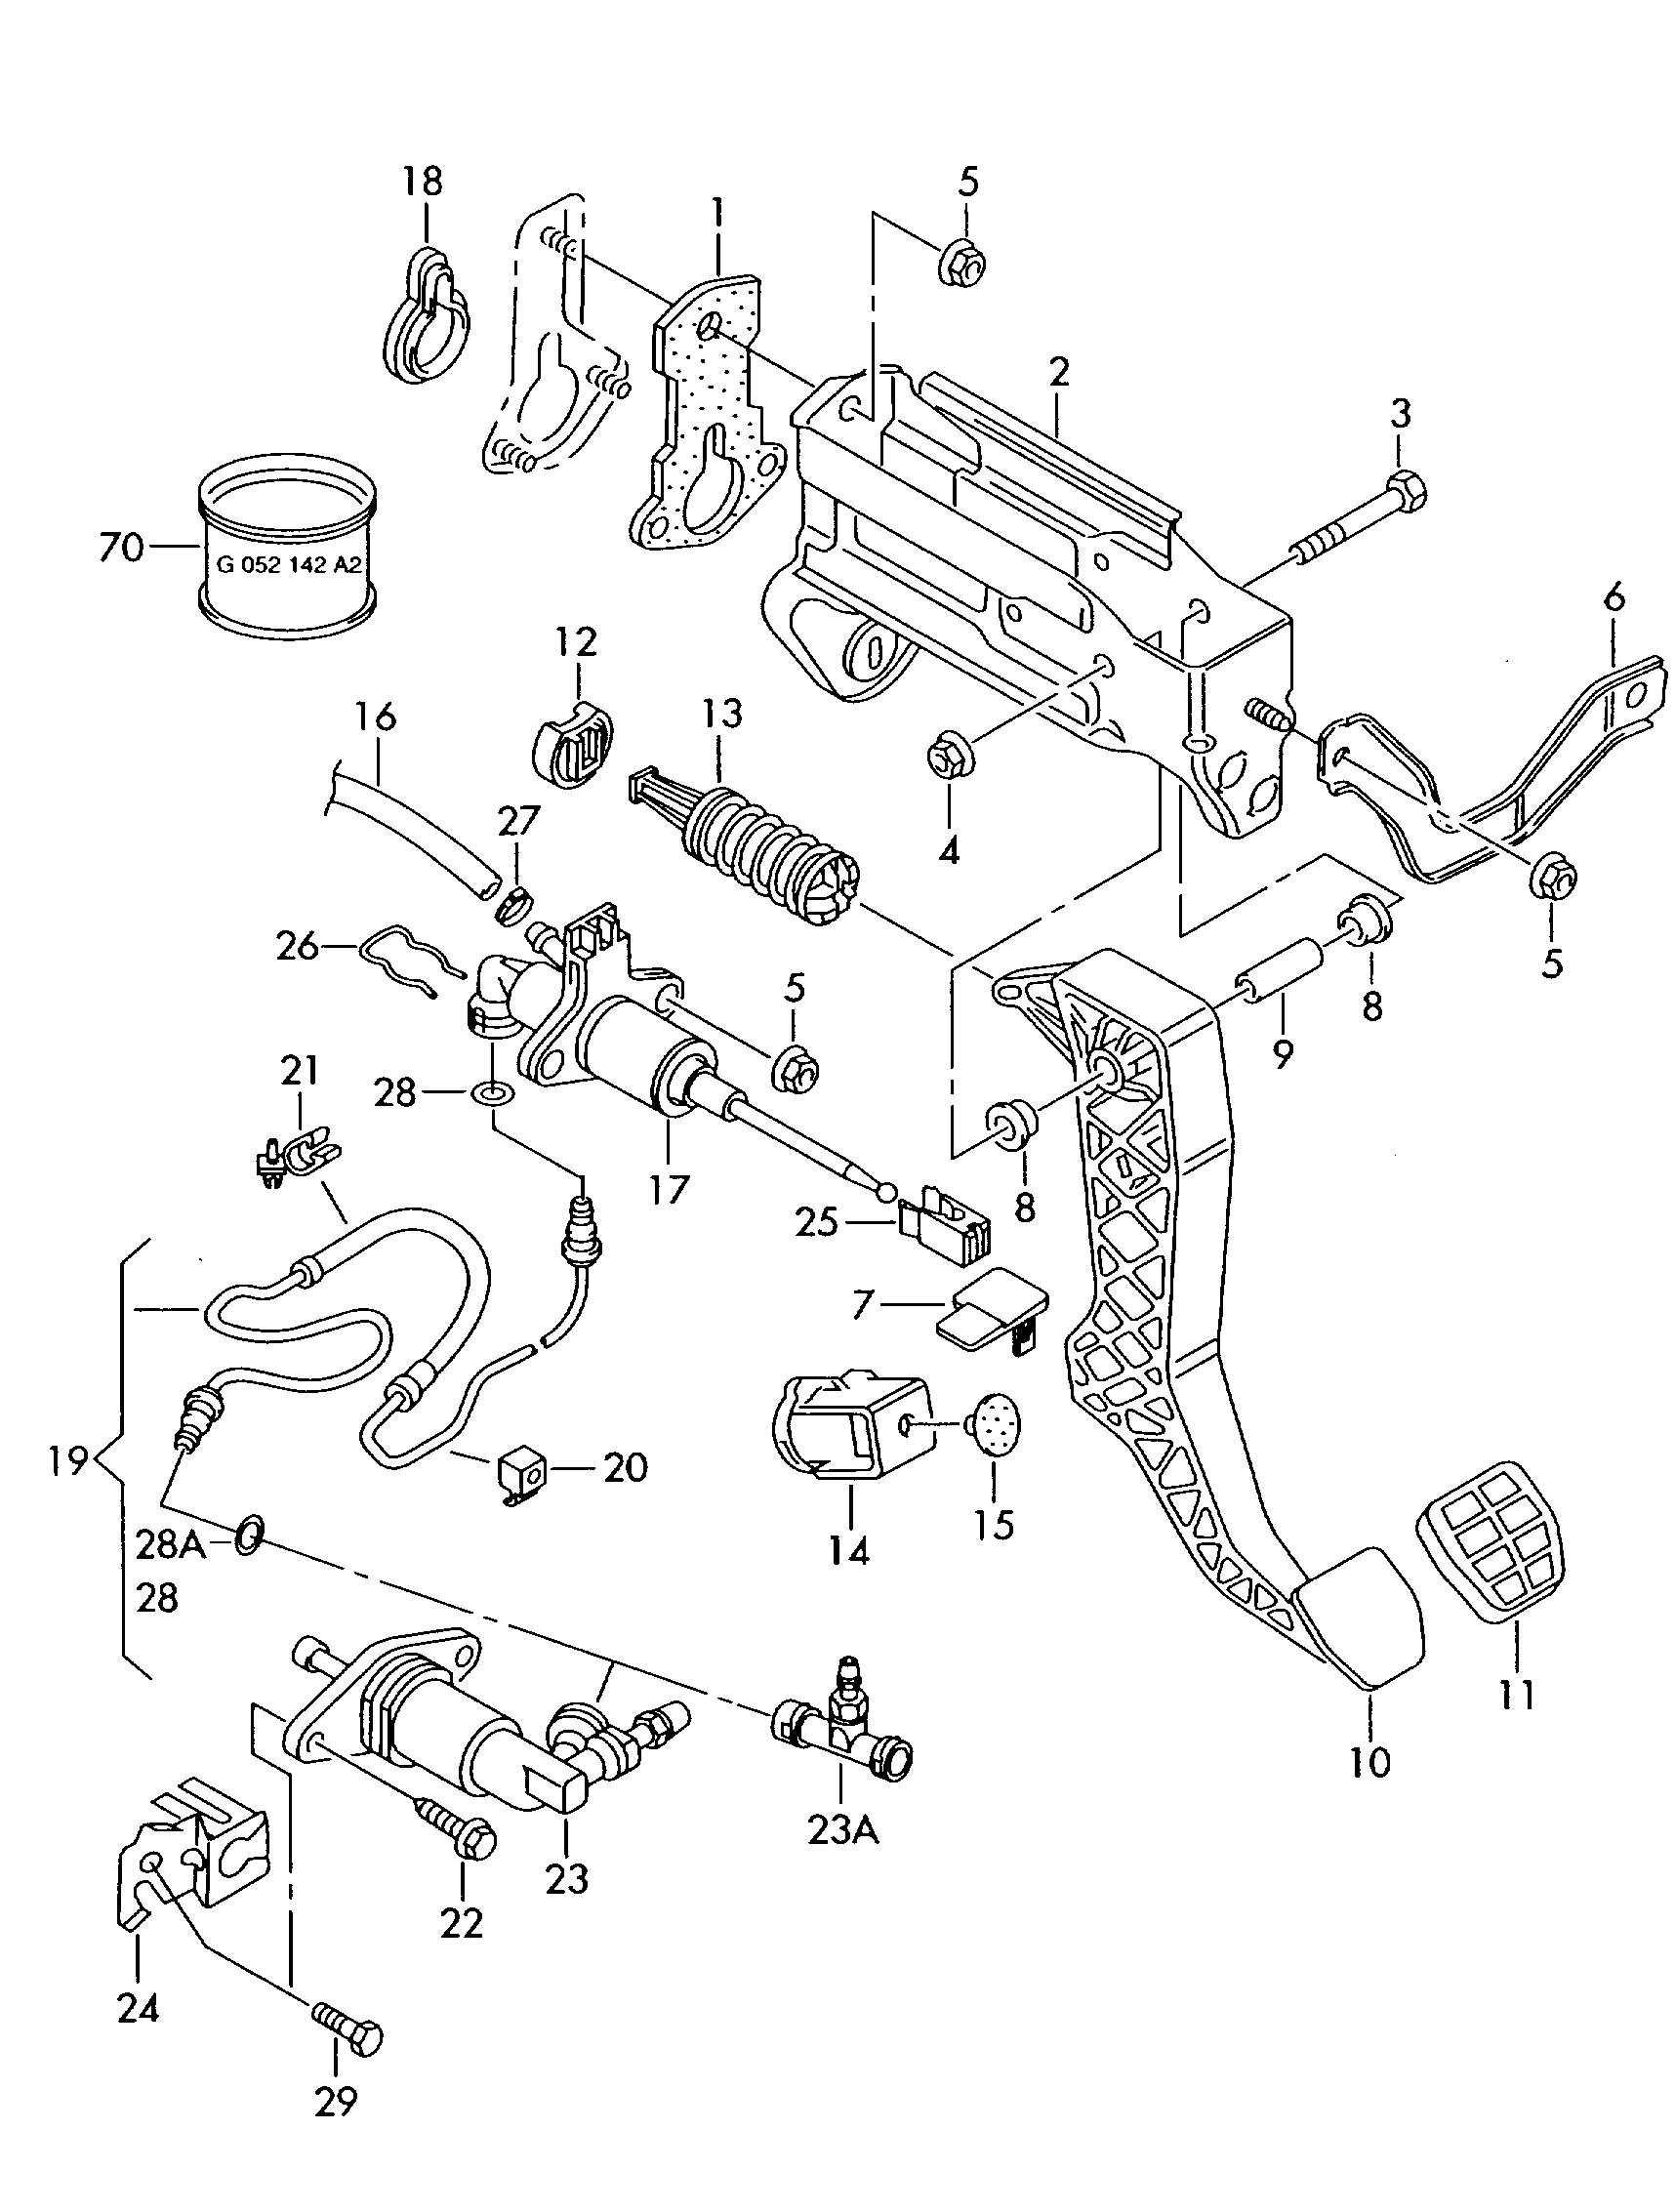 Volkswagen (VW) New Beetle Clutch pedal mechanism